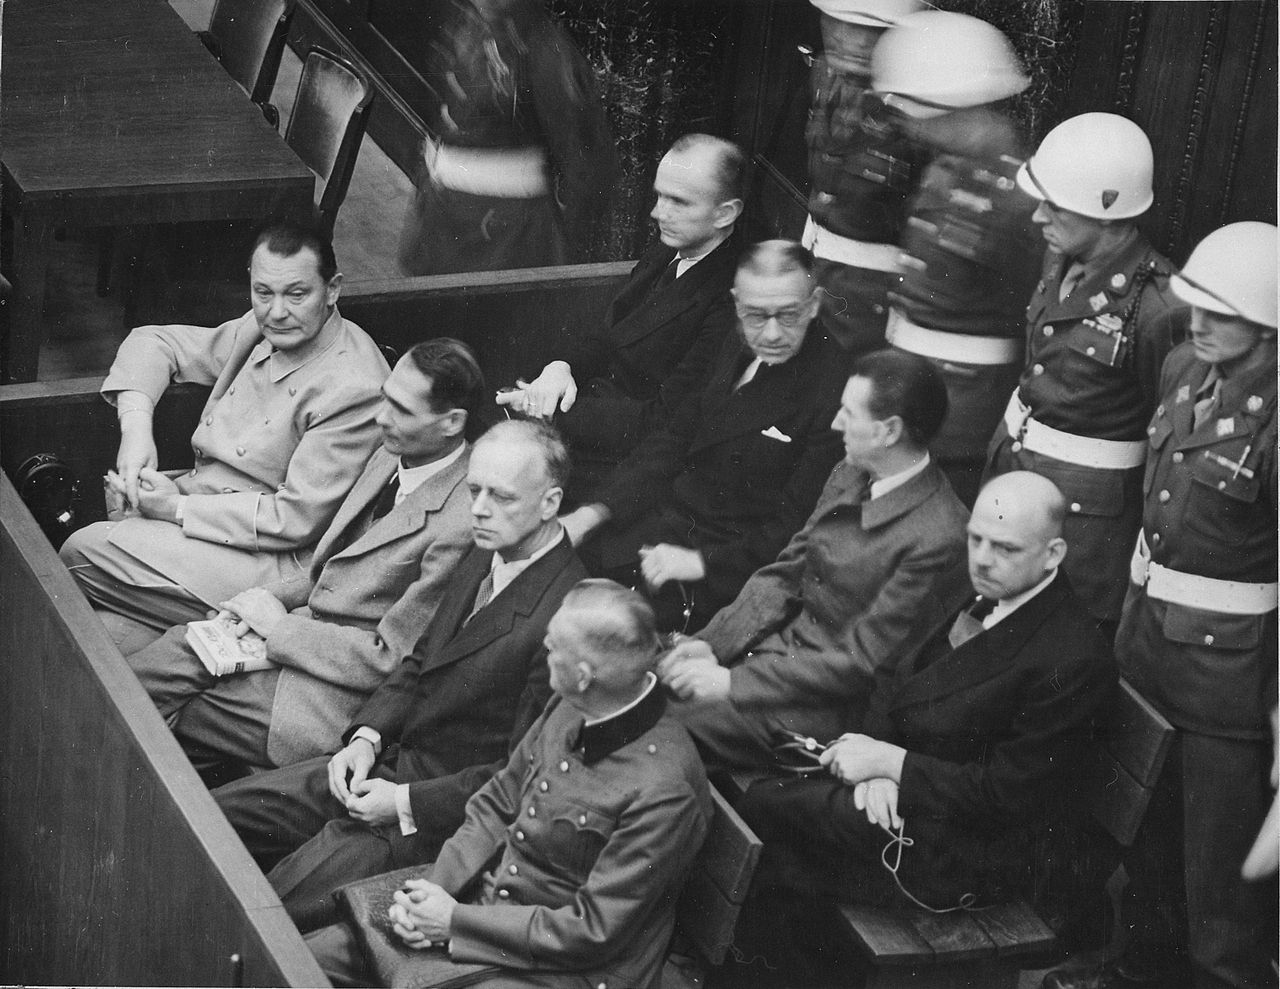 Defendants in the dock at Nuremberg (image from Wikicommons)